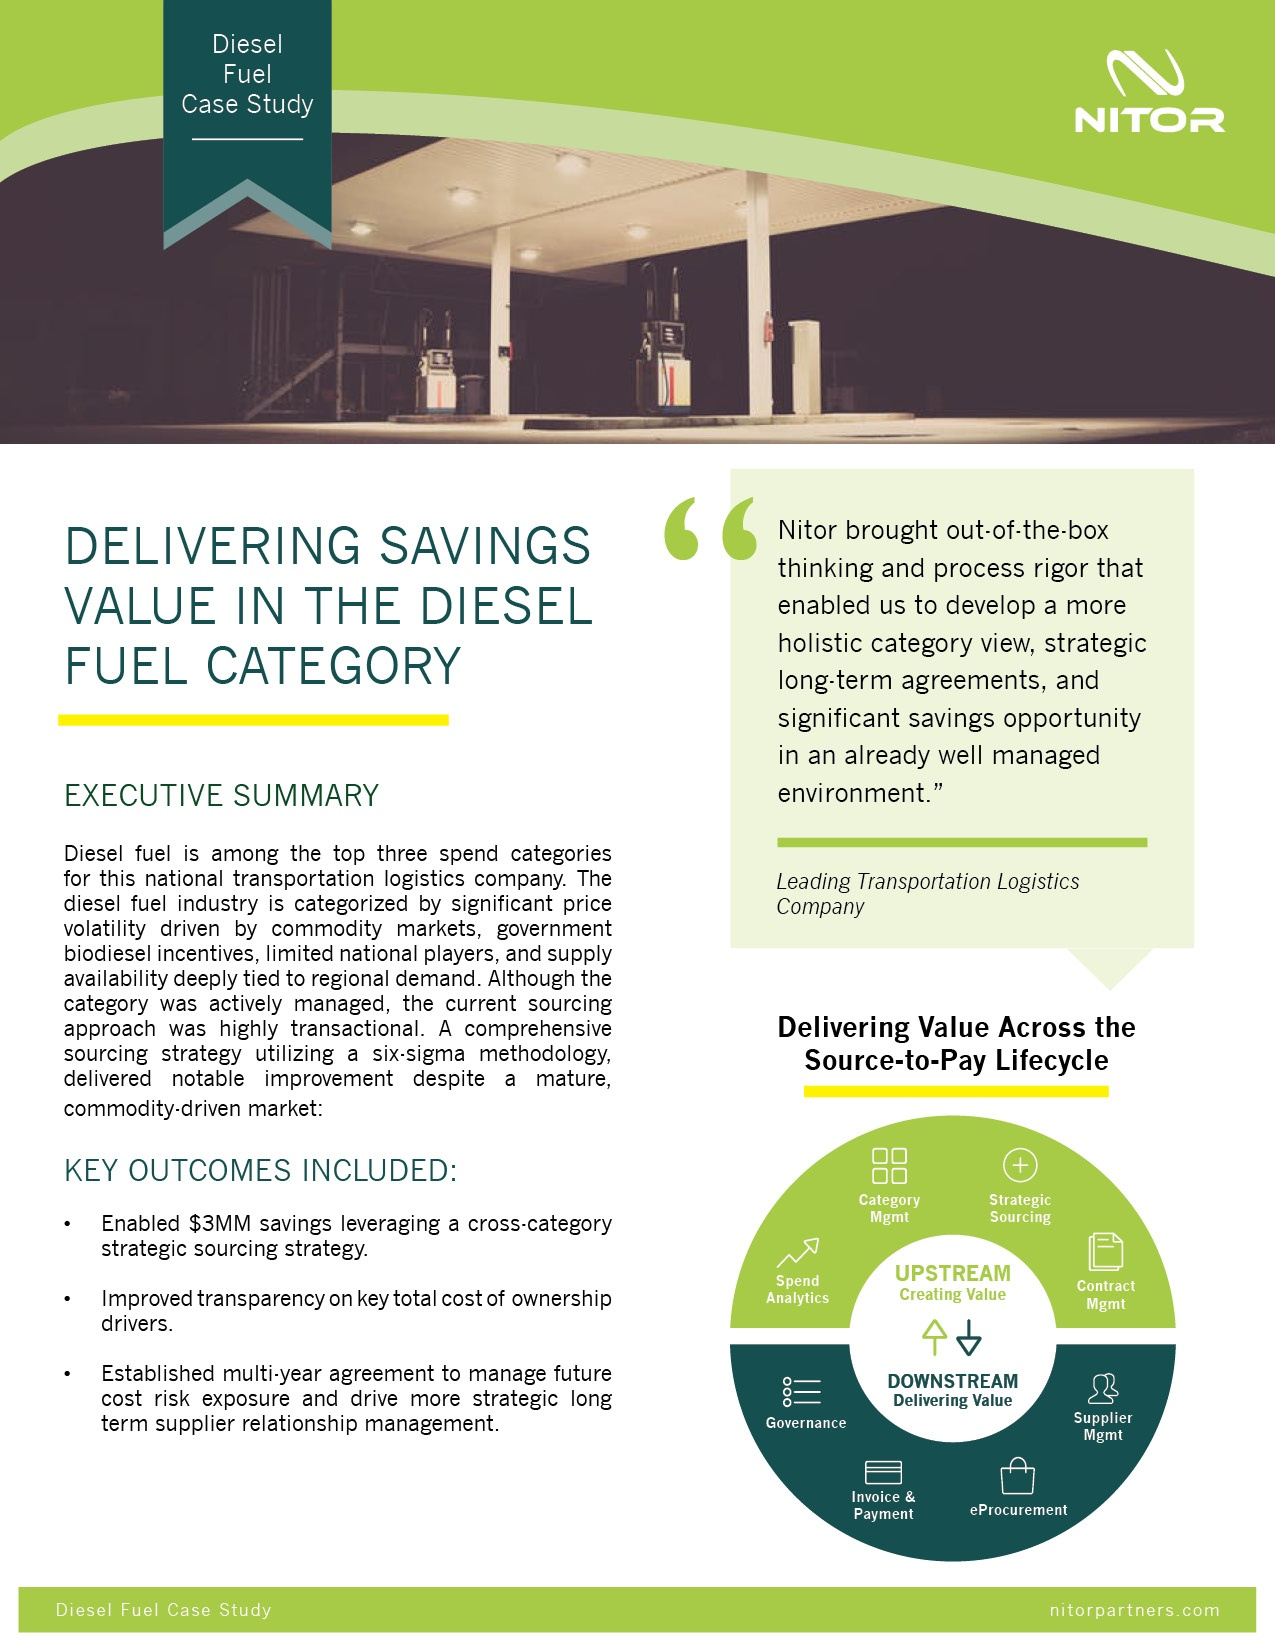 Nitor Strategic Sourcing Case Study Diesel Fuel